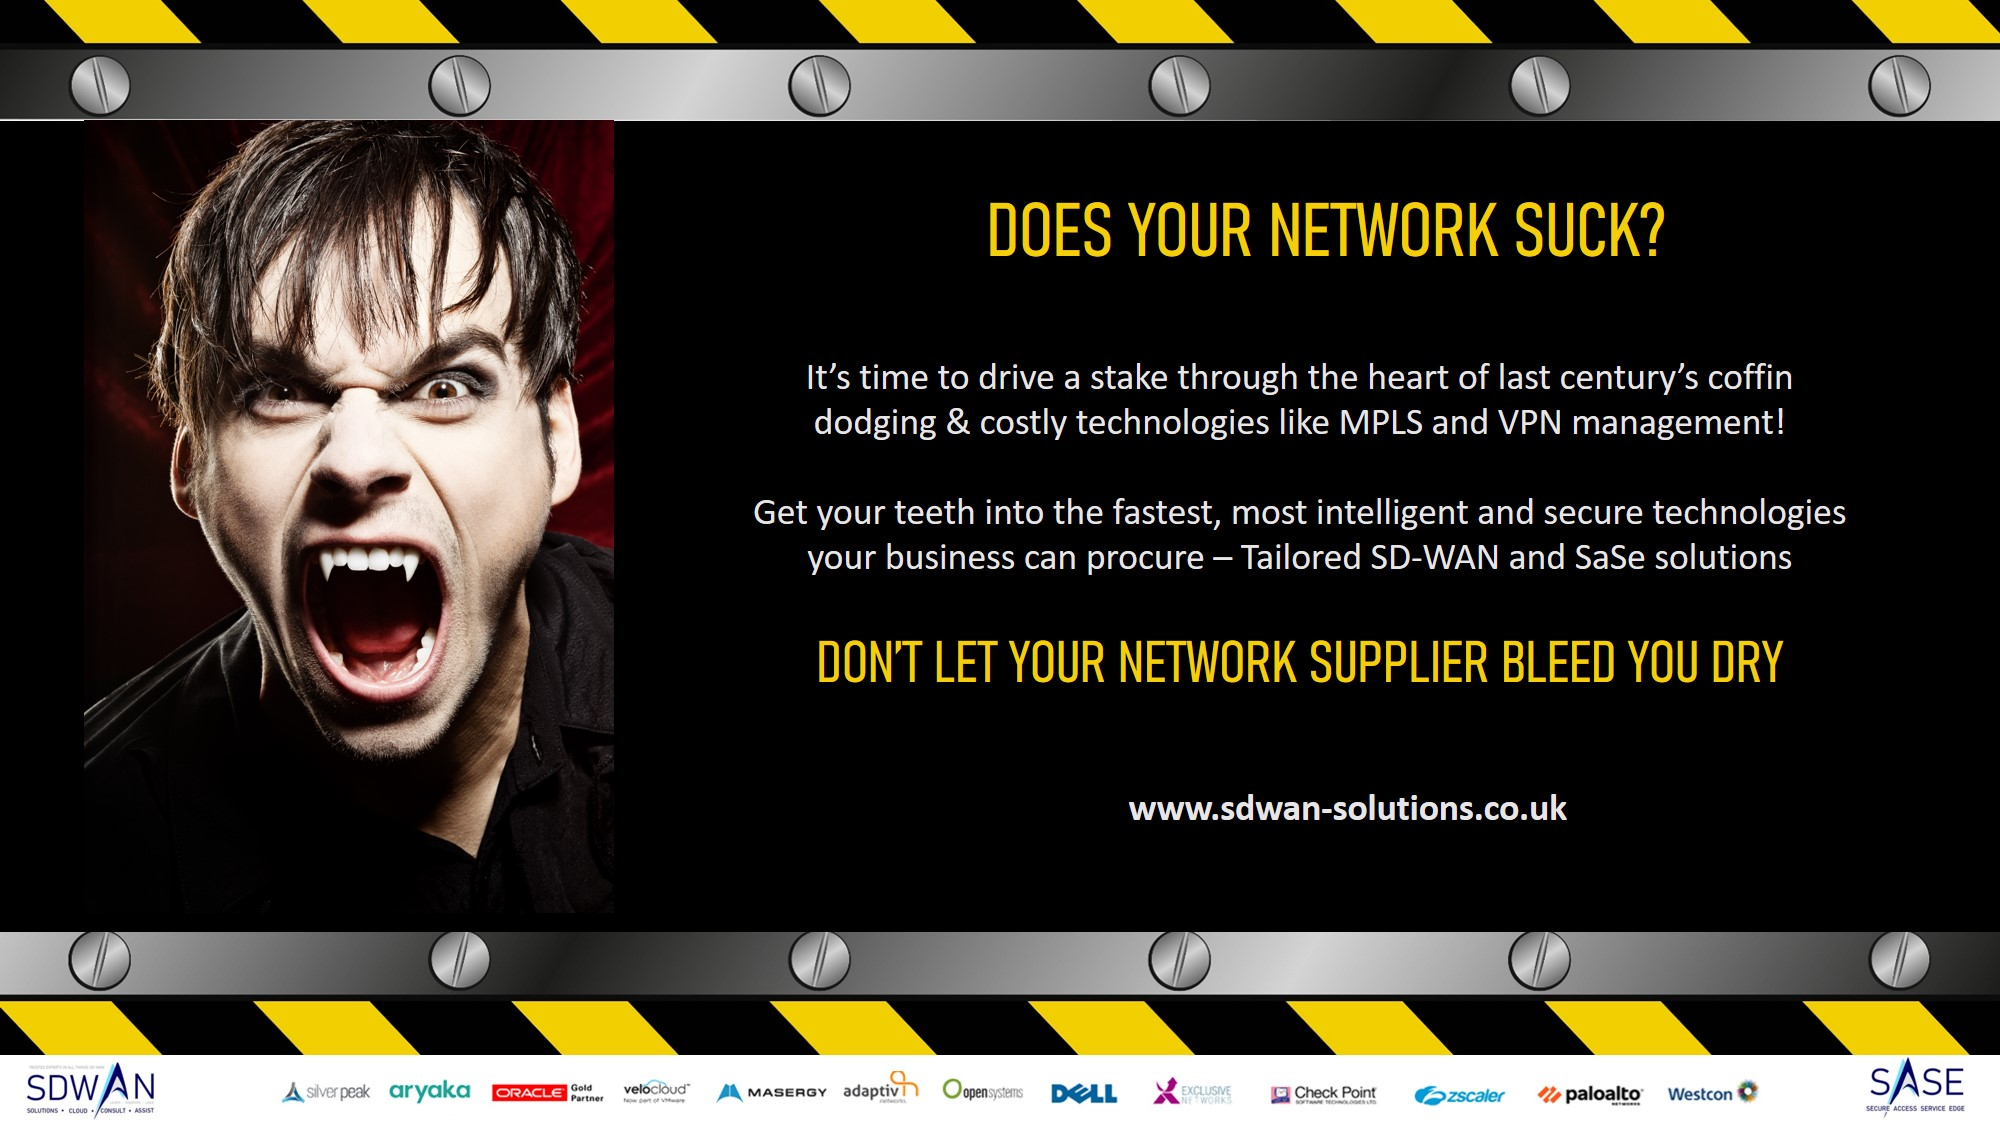 Don't let your network supplier bleed you dry